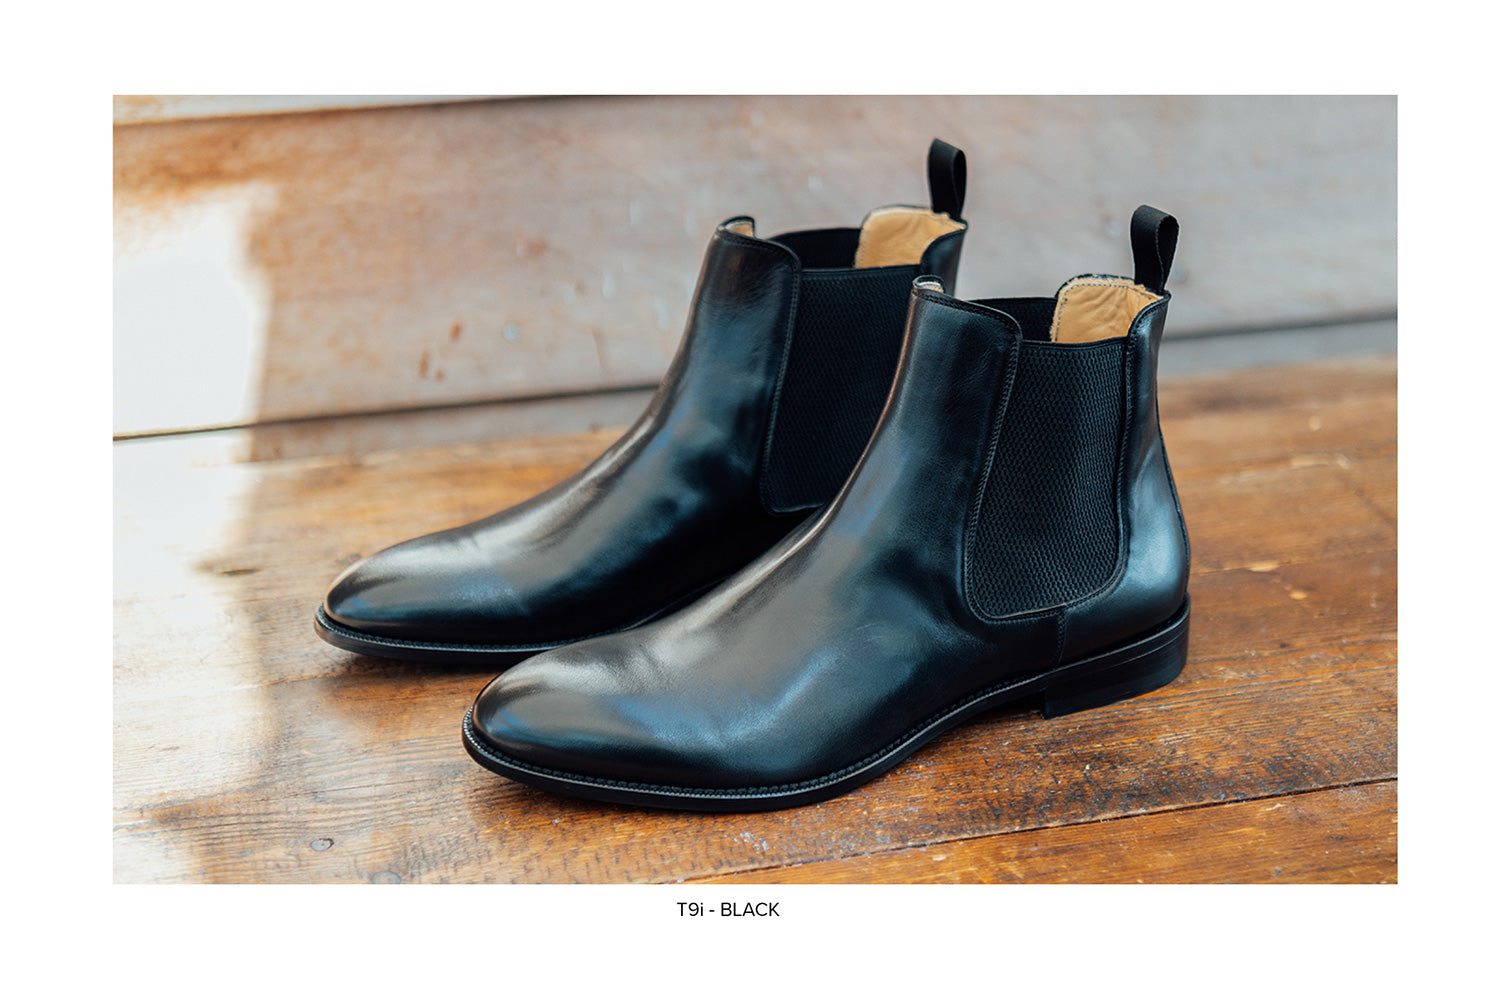 T9i Chelsea Boot in Black by Blake McKay